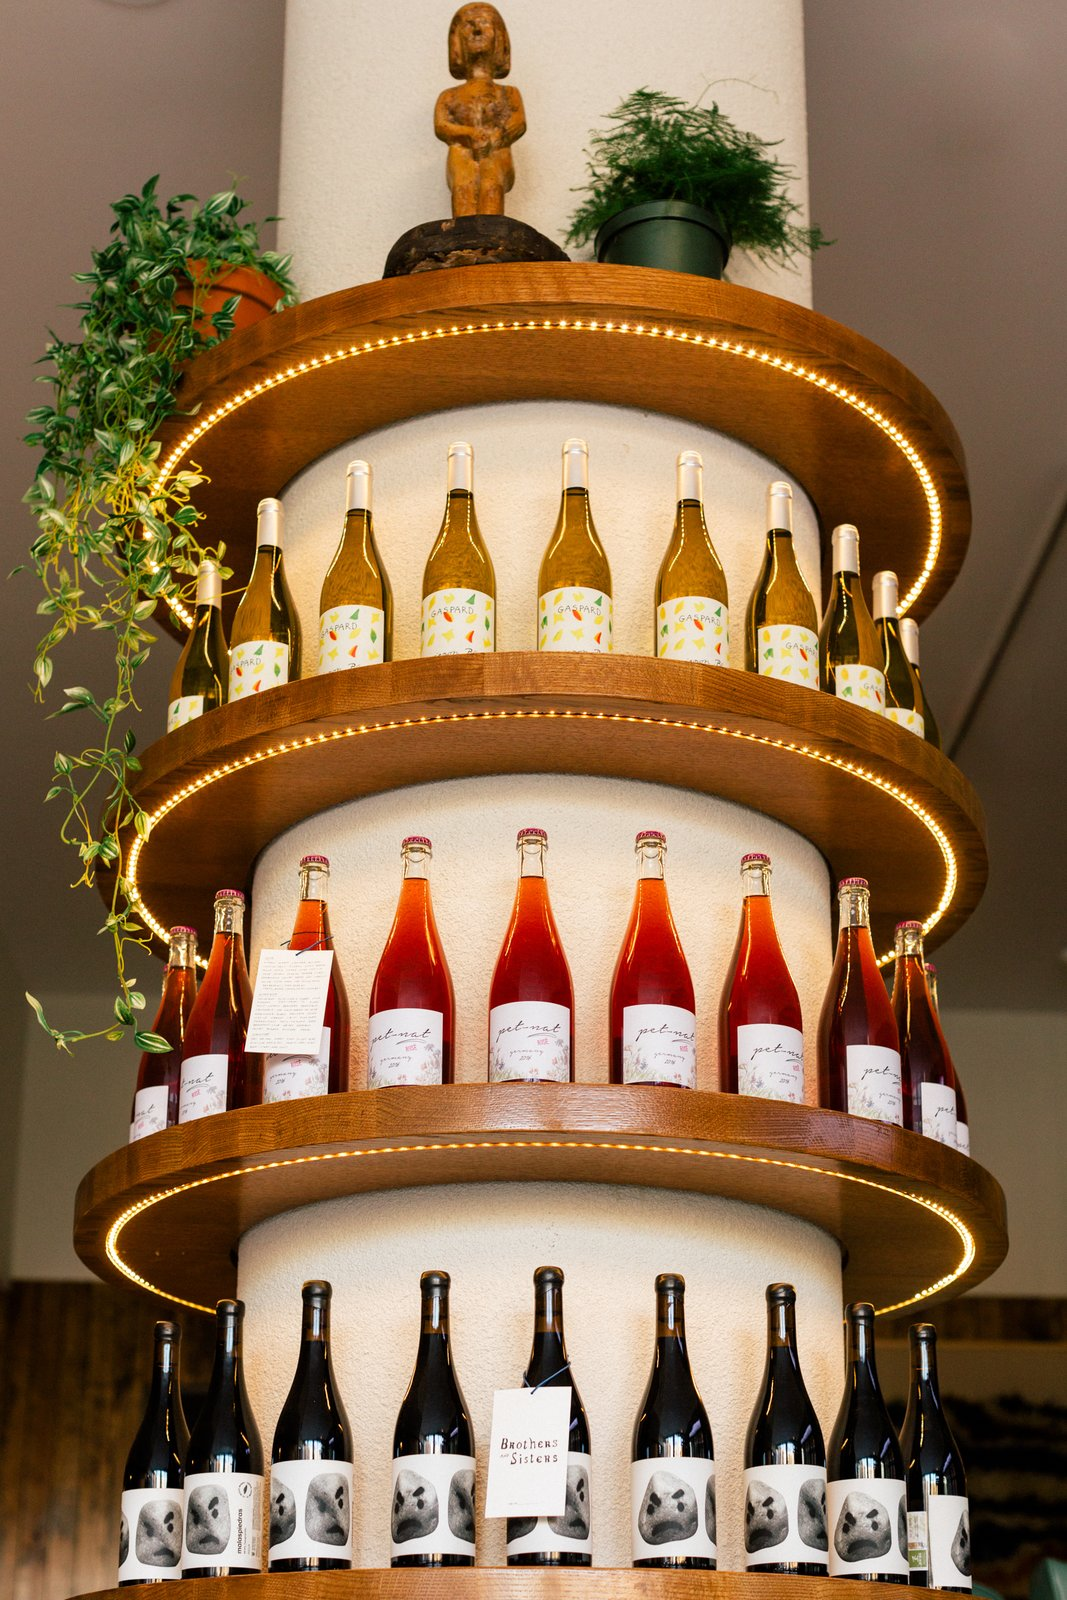 Brothers and Sisters wine column